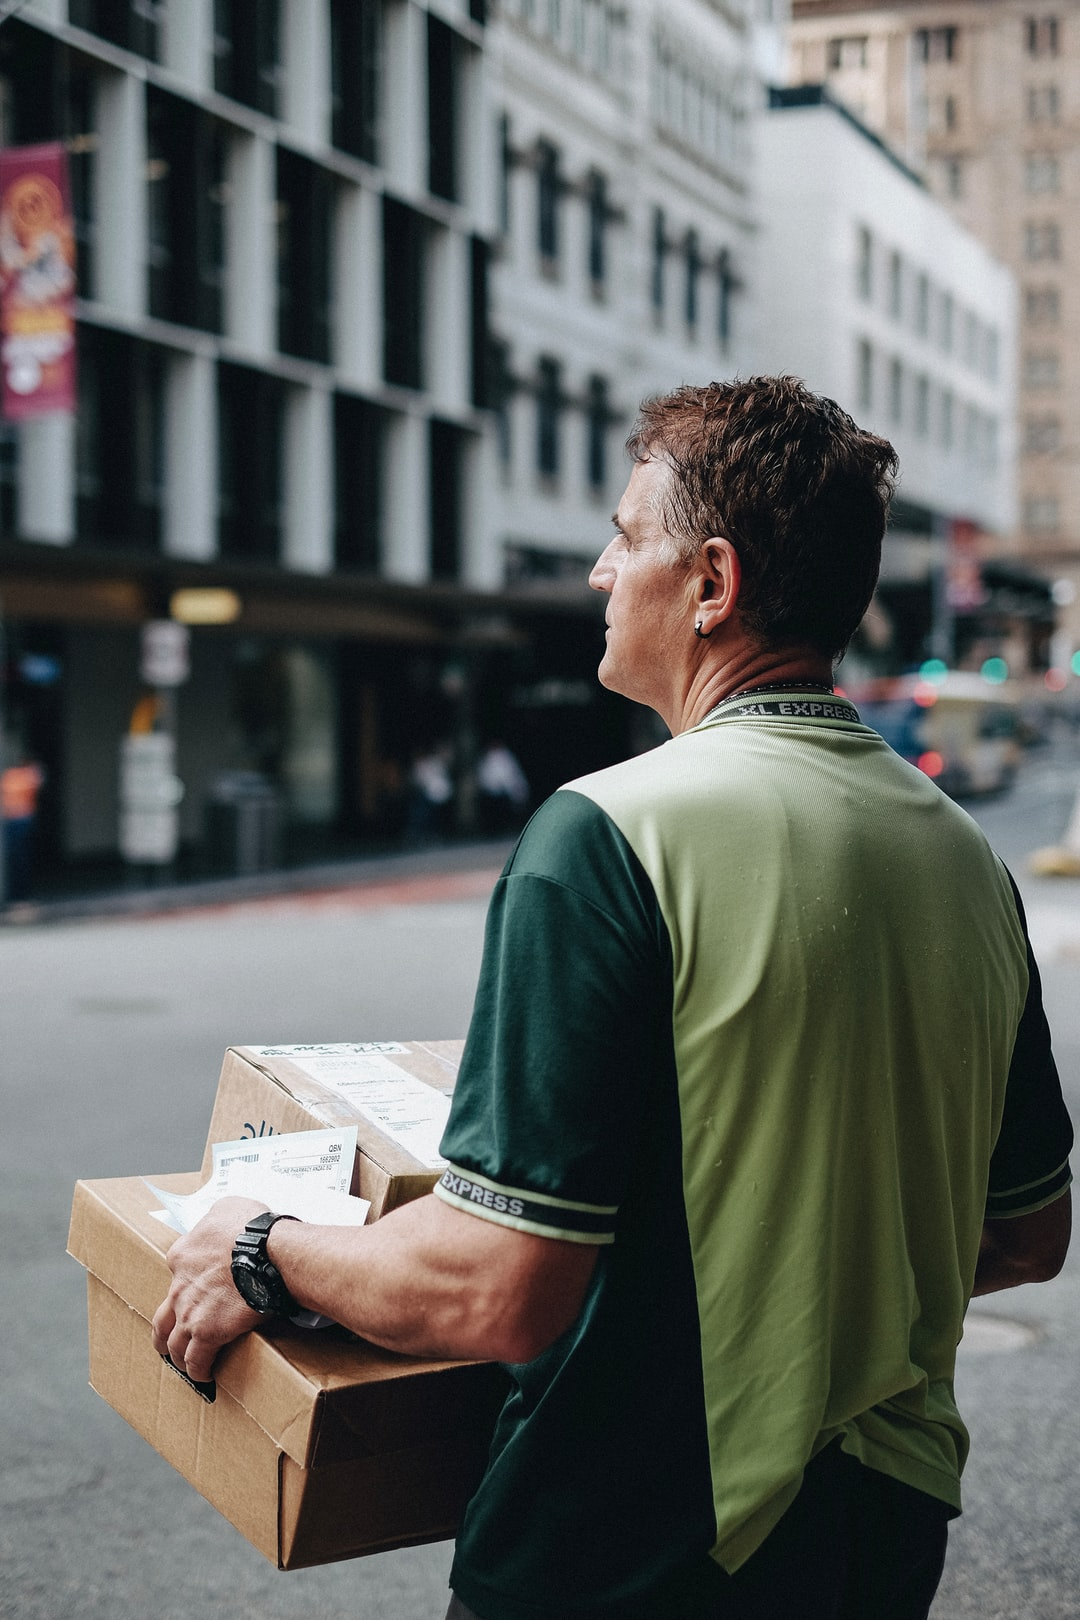 Finding a Reliable Prescription Delivery Service: 13 Questions to Ask Before You Hire